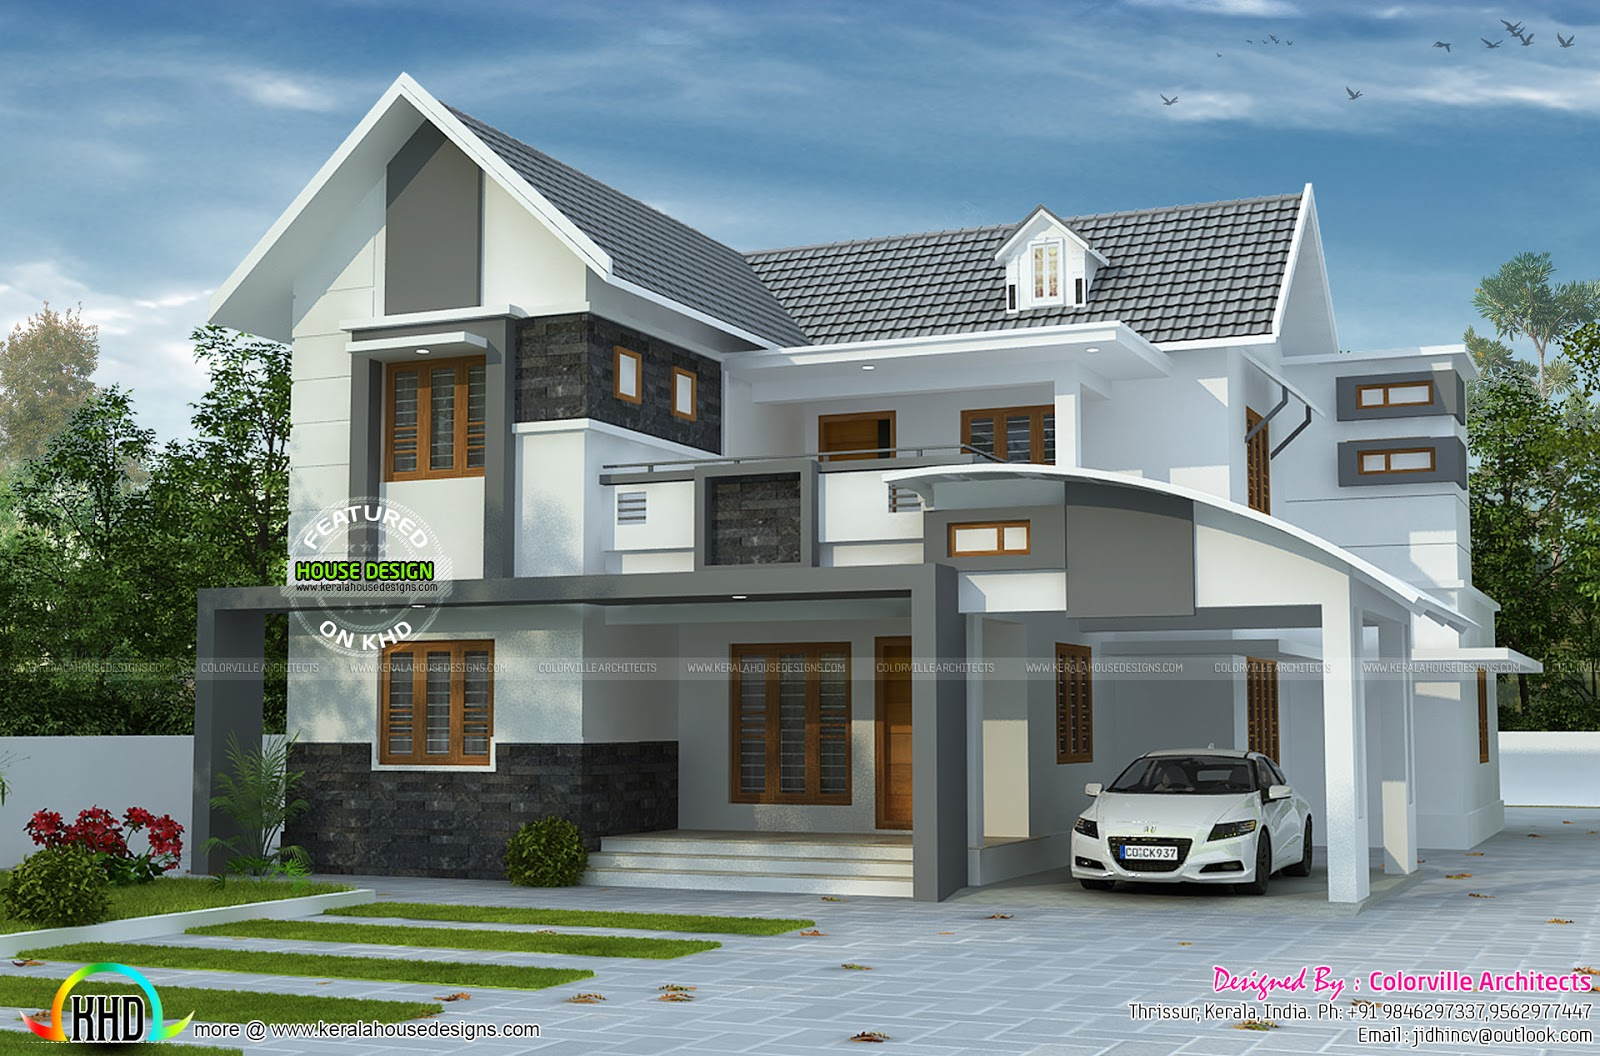 House plan by colorville architects kerala home design for House plans by design